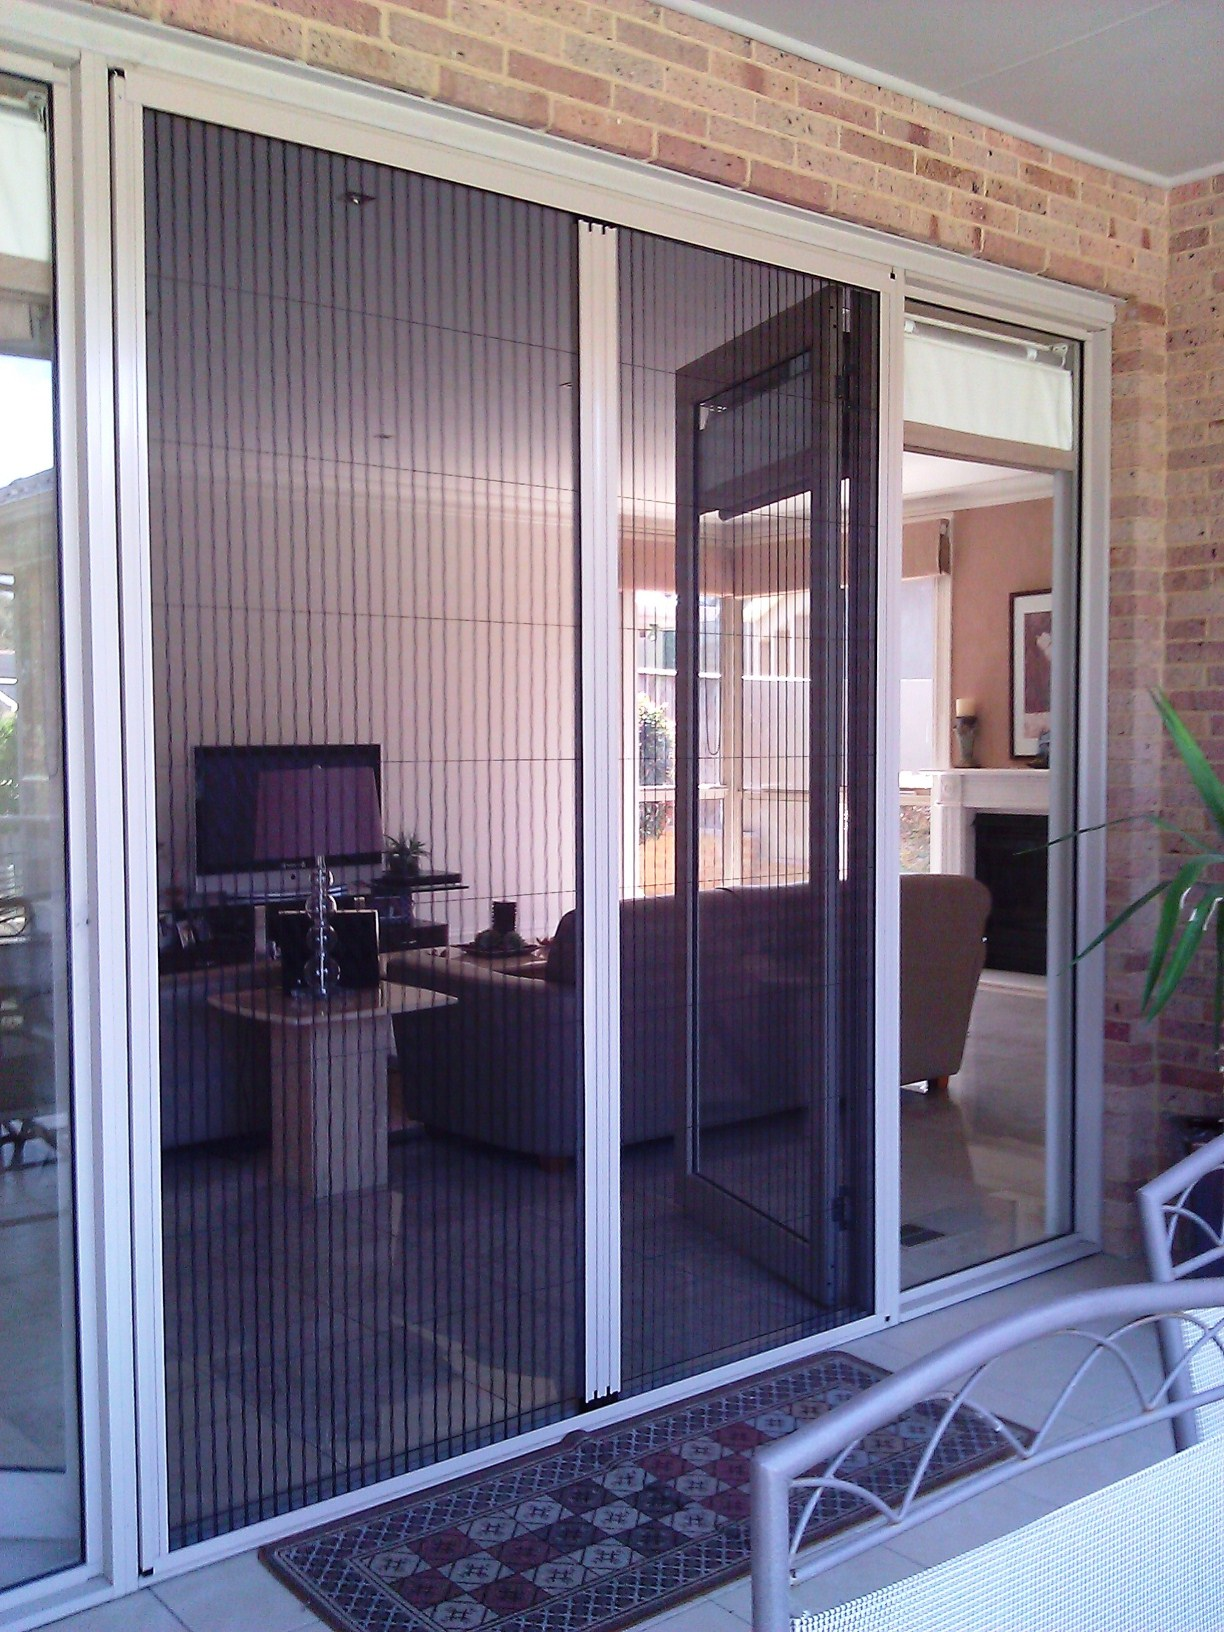 Flyscreens Fly Screens Retractable Fly Screens